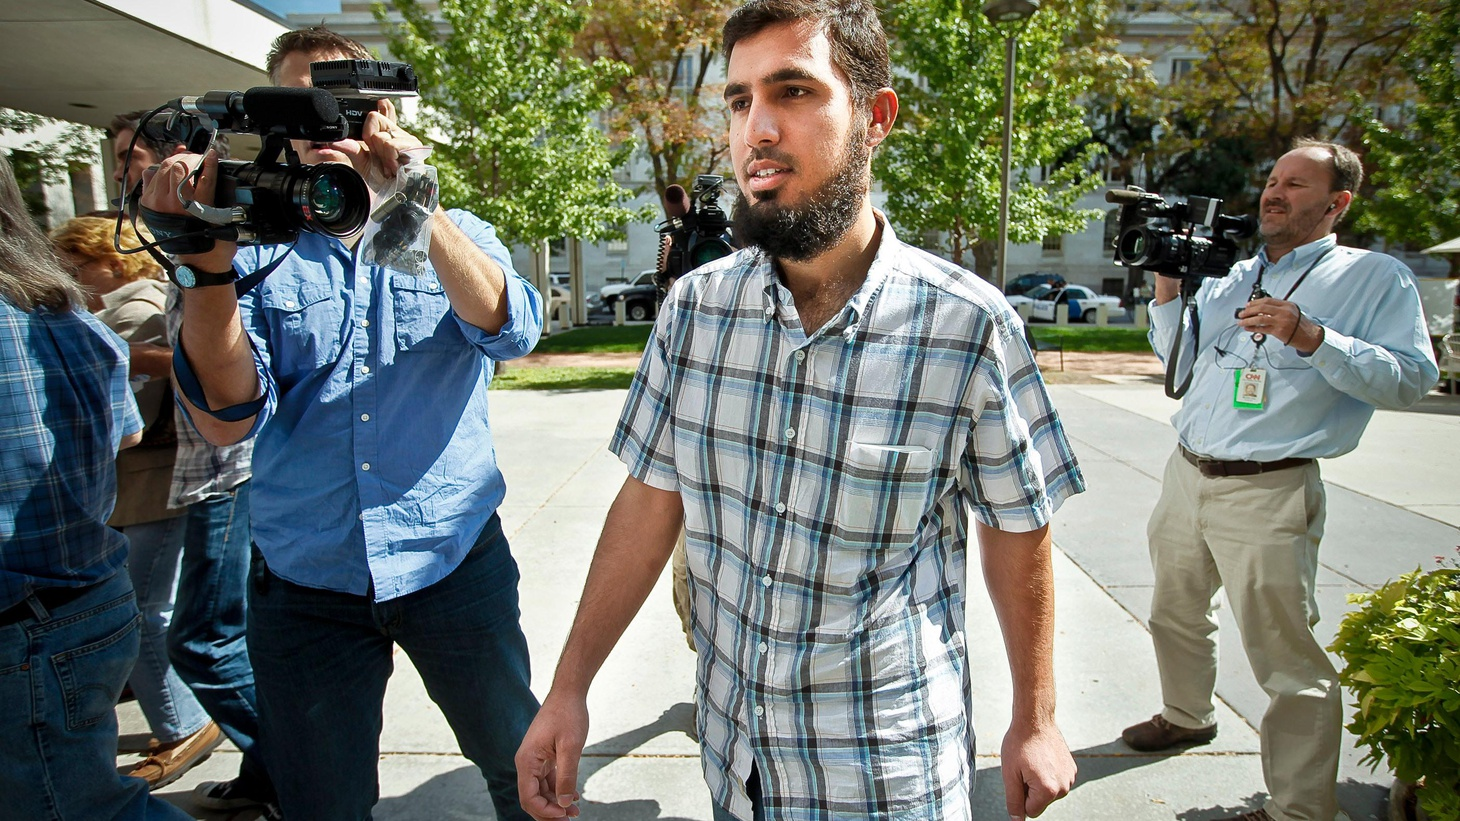 It is being called one of the most serious terrorist threats since 9/11. Najibullah Zazi, a 24-year¬old Afghan entered a plea of 'not guilty' this week to charges of conspiracy to use weapons of mass destruction. His arrest came amidst a number of other terror related cases. How serious were these threats? Are they the result of improved law enforcement? What role did the Patriot Act play? Also, the US and its allies talk to Iran about its nuclear program. On Reporter's Notebook, could massive earthquakes thousands of miles apart impact other faults around the globe? Conan Nolan guest hosts.